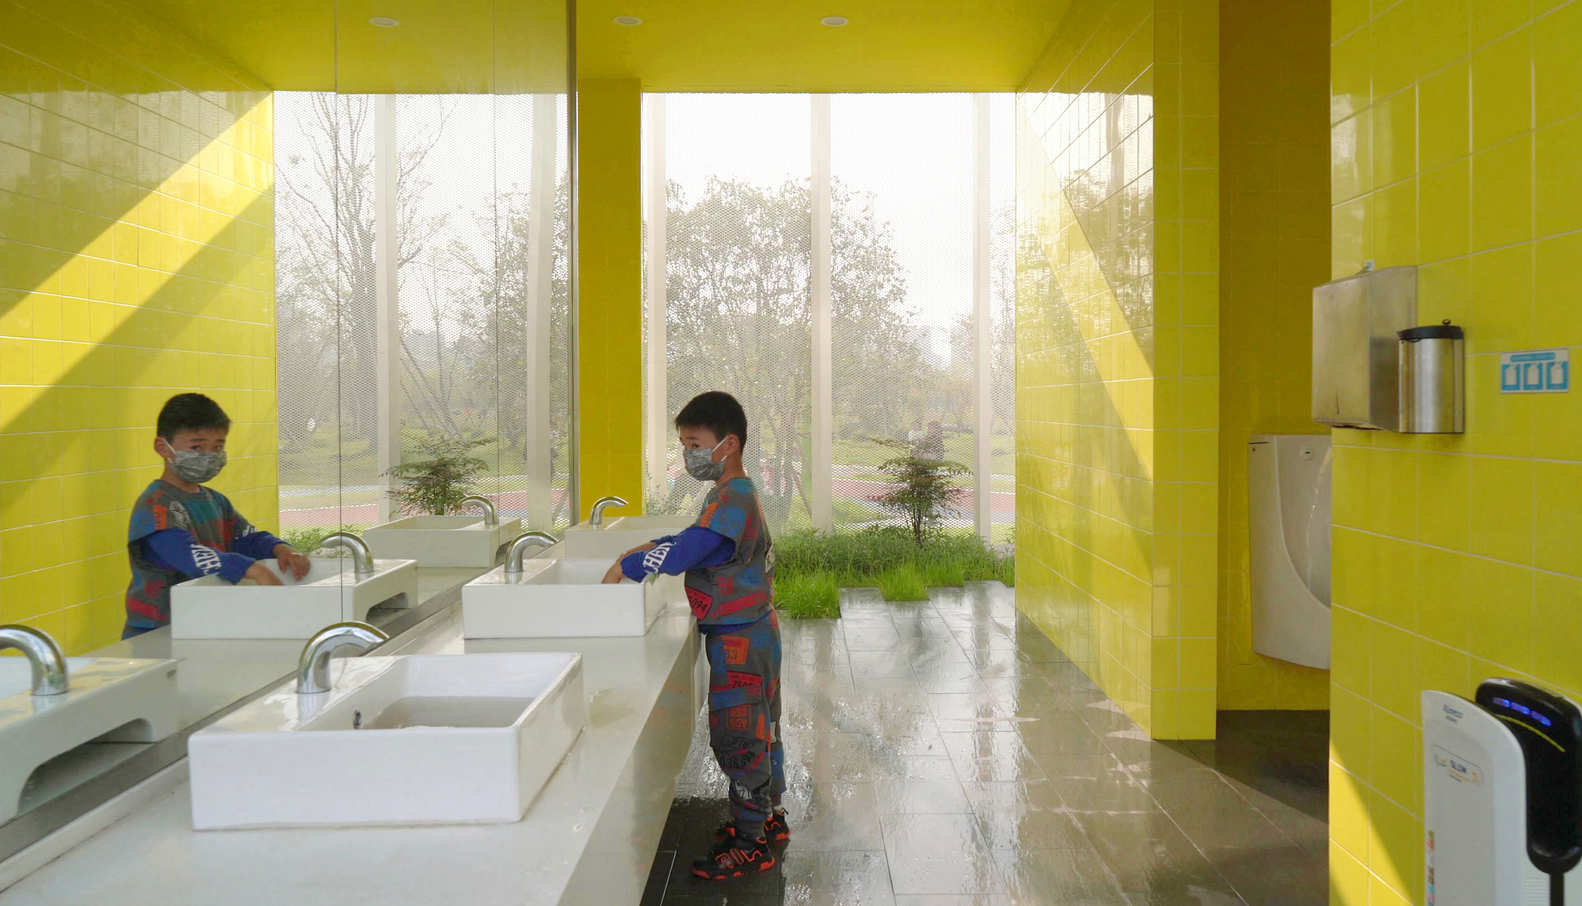 04-4模糊室内外边界的洗手台【Hand_washing_table_with_blurred_indoor_and_outdoor_boundaries】